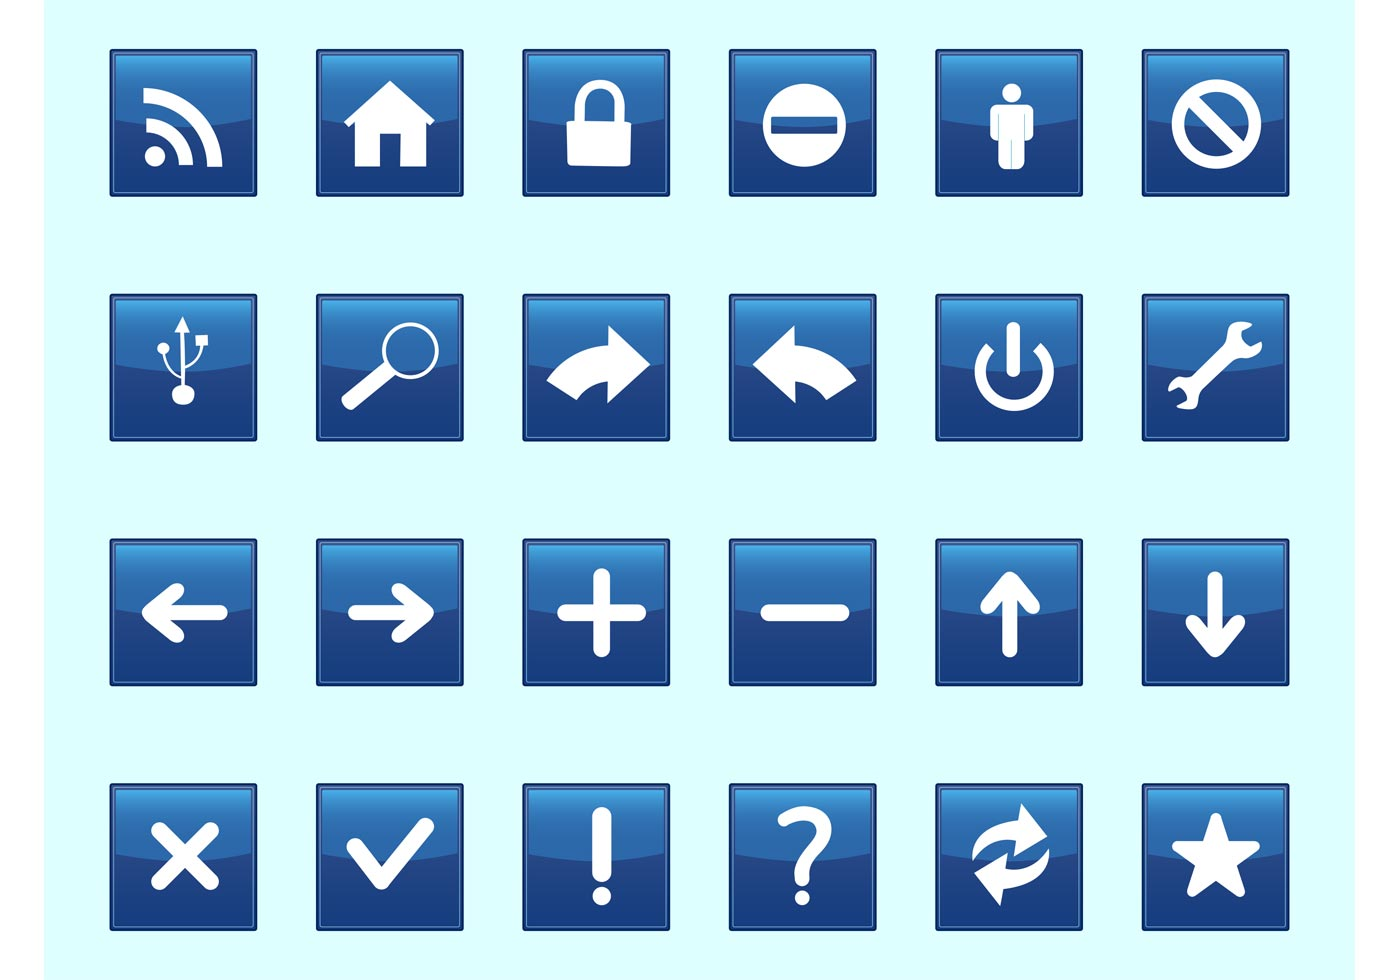 Square Technology Icons - Download Free Vector Art, Stock Graphics ...